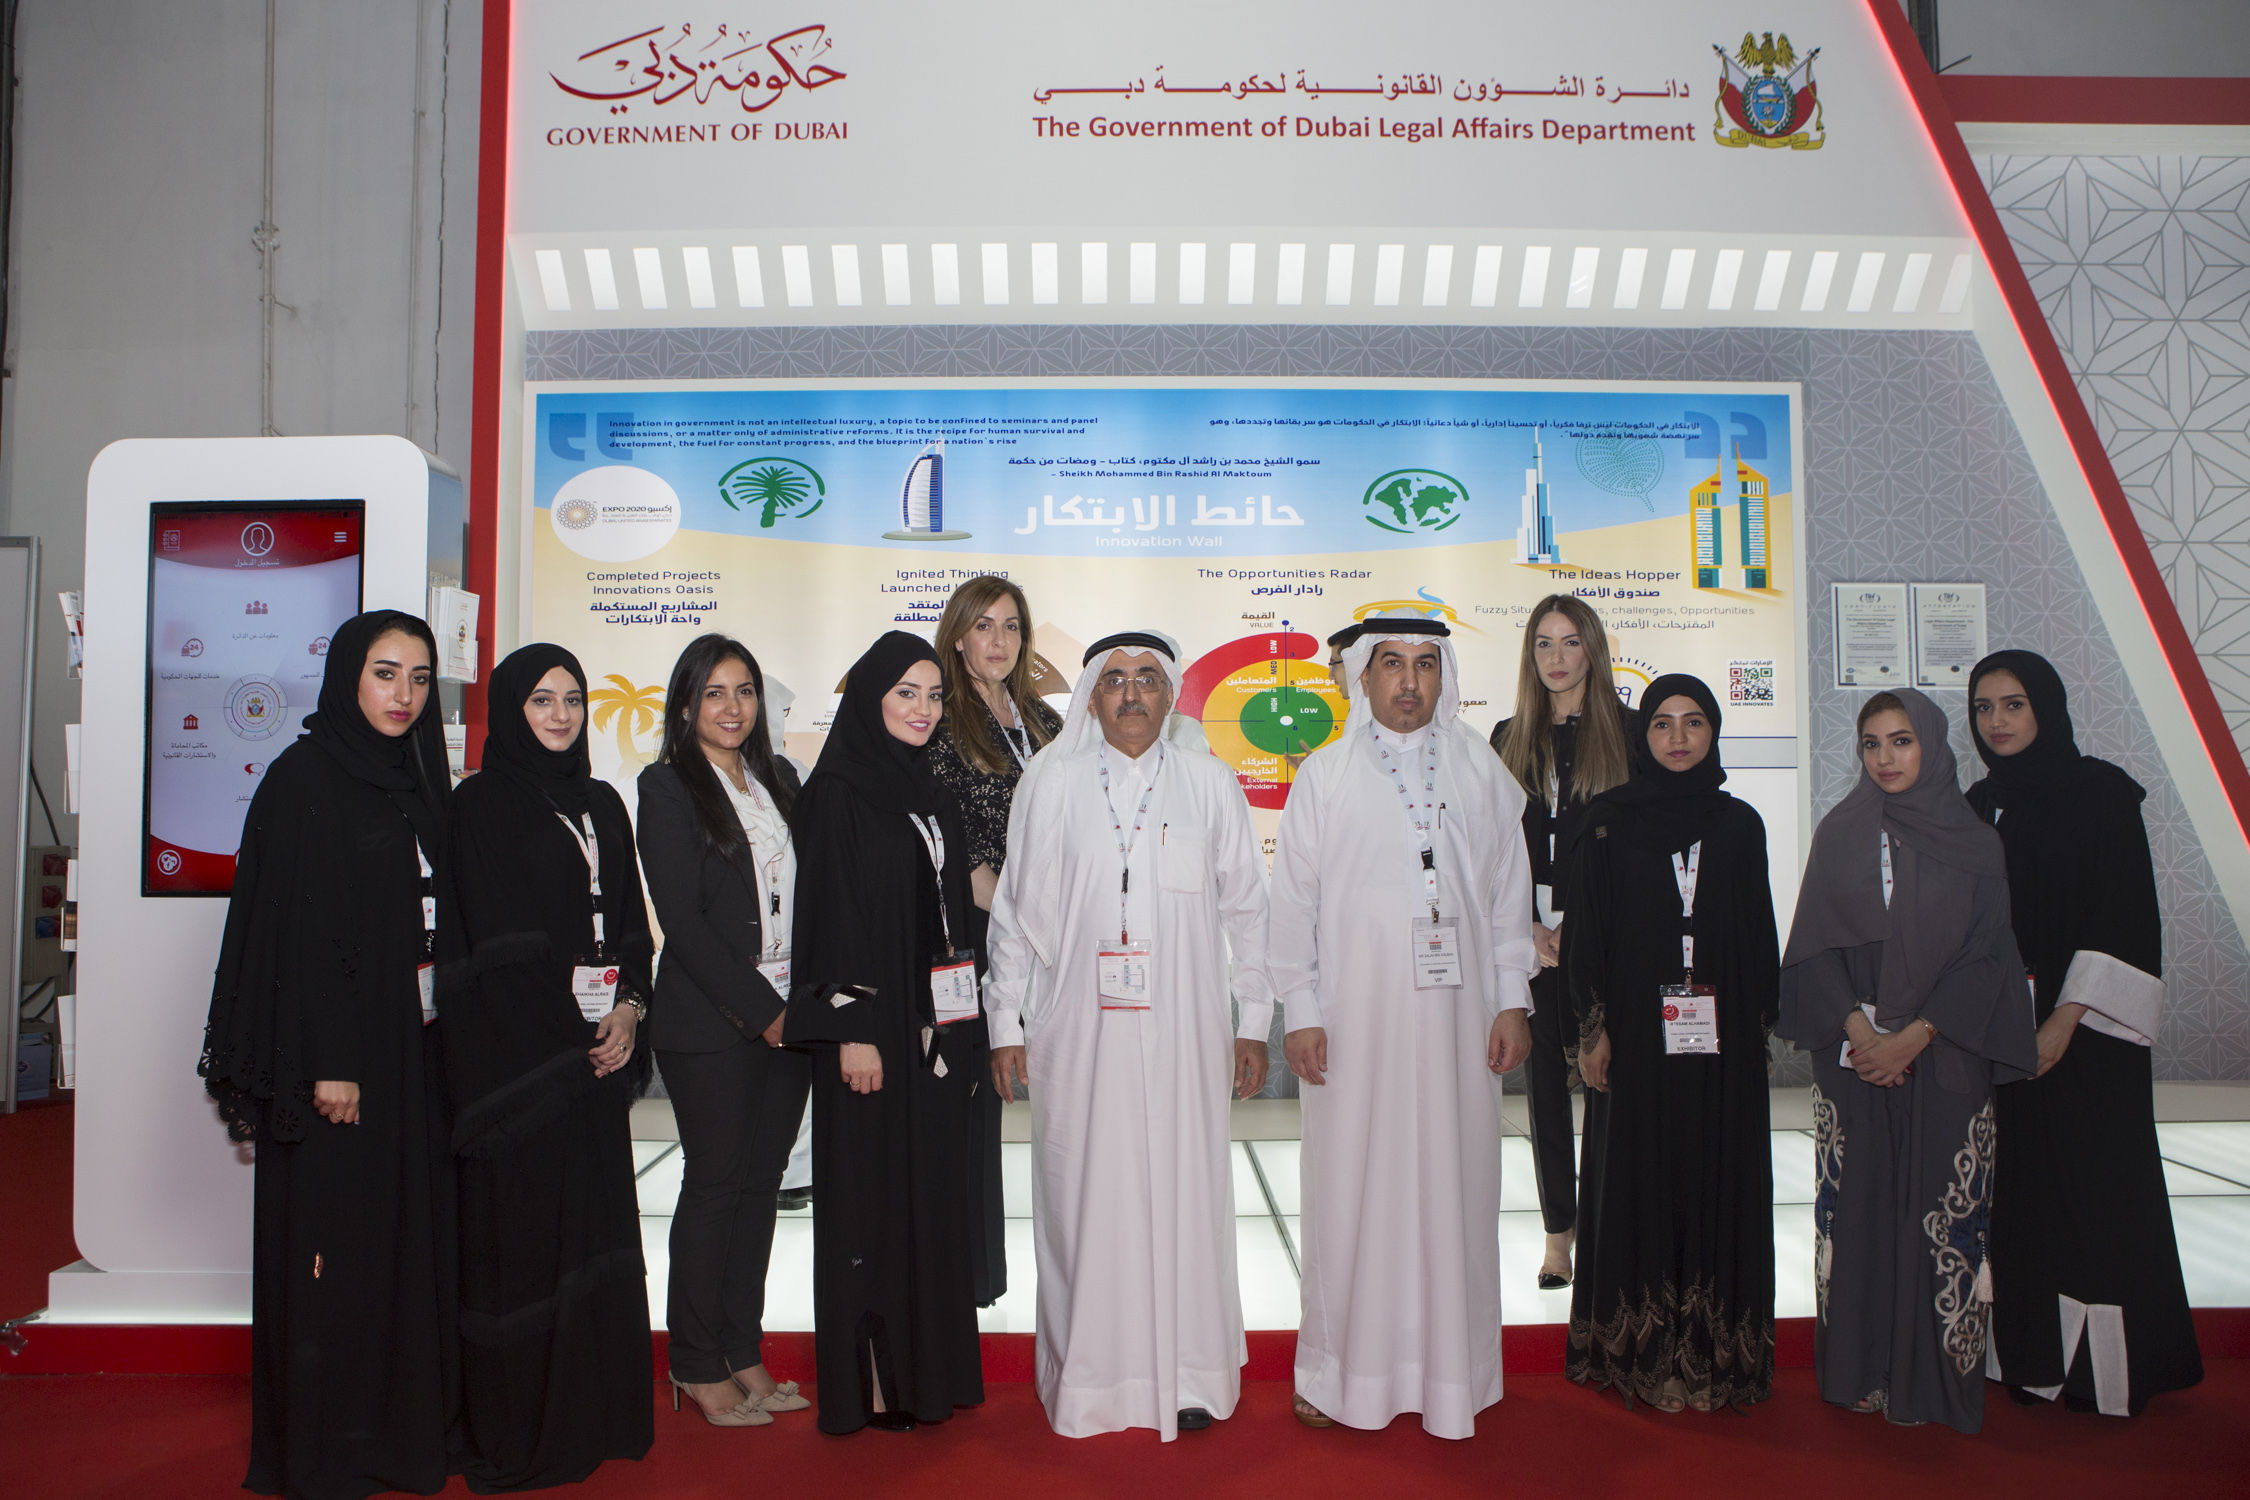 The Government of Dubai Legal Affairs Department participation in the Dubai International Government Achievements Exhibition 04/04/2017